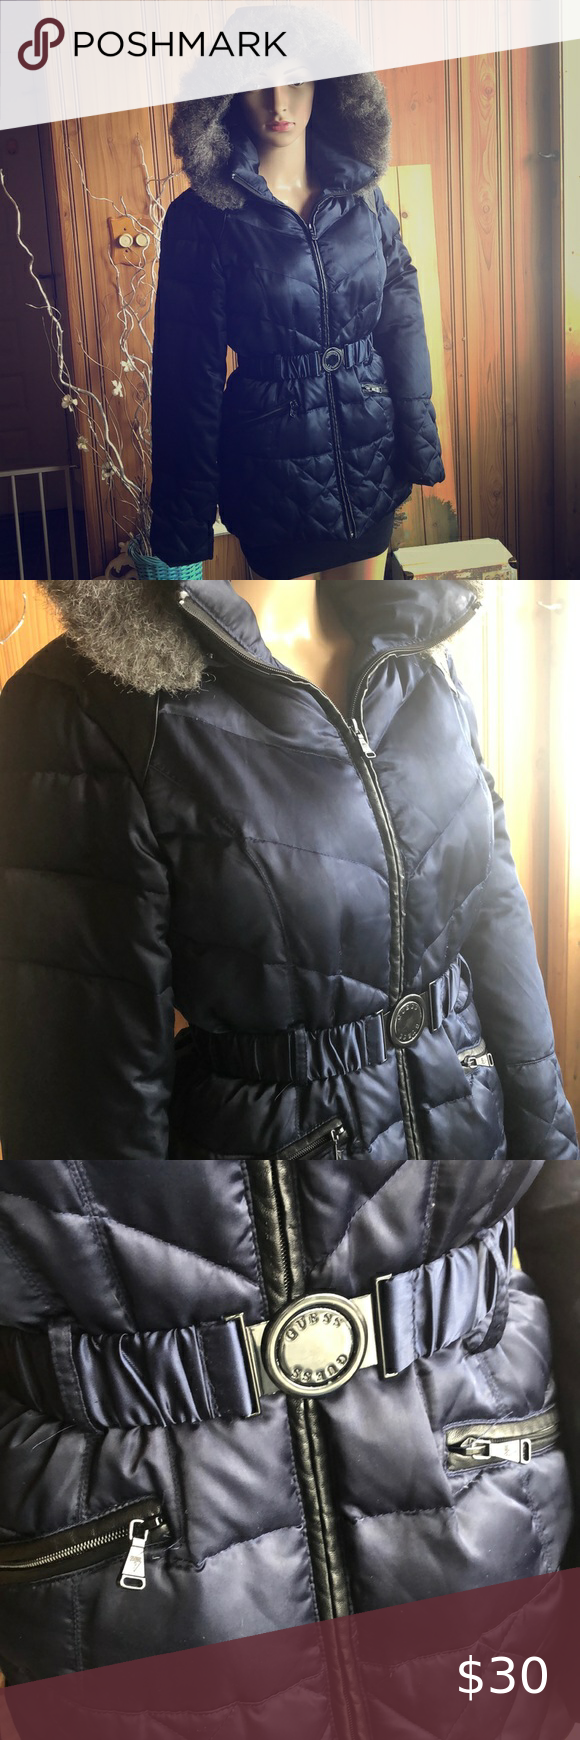 Deleting Soon Make An Offer Puffer Jacket Faux Fur Puffer Jacket Puffer Jackets Jackets [ 1740 x 580 Pixel ]